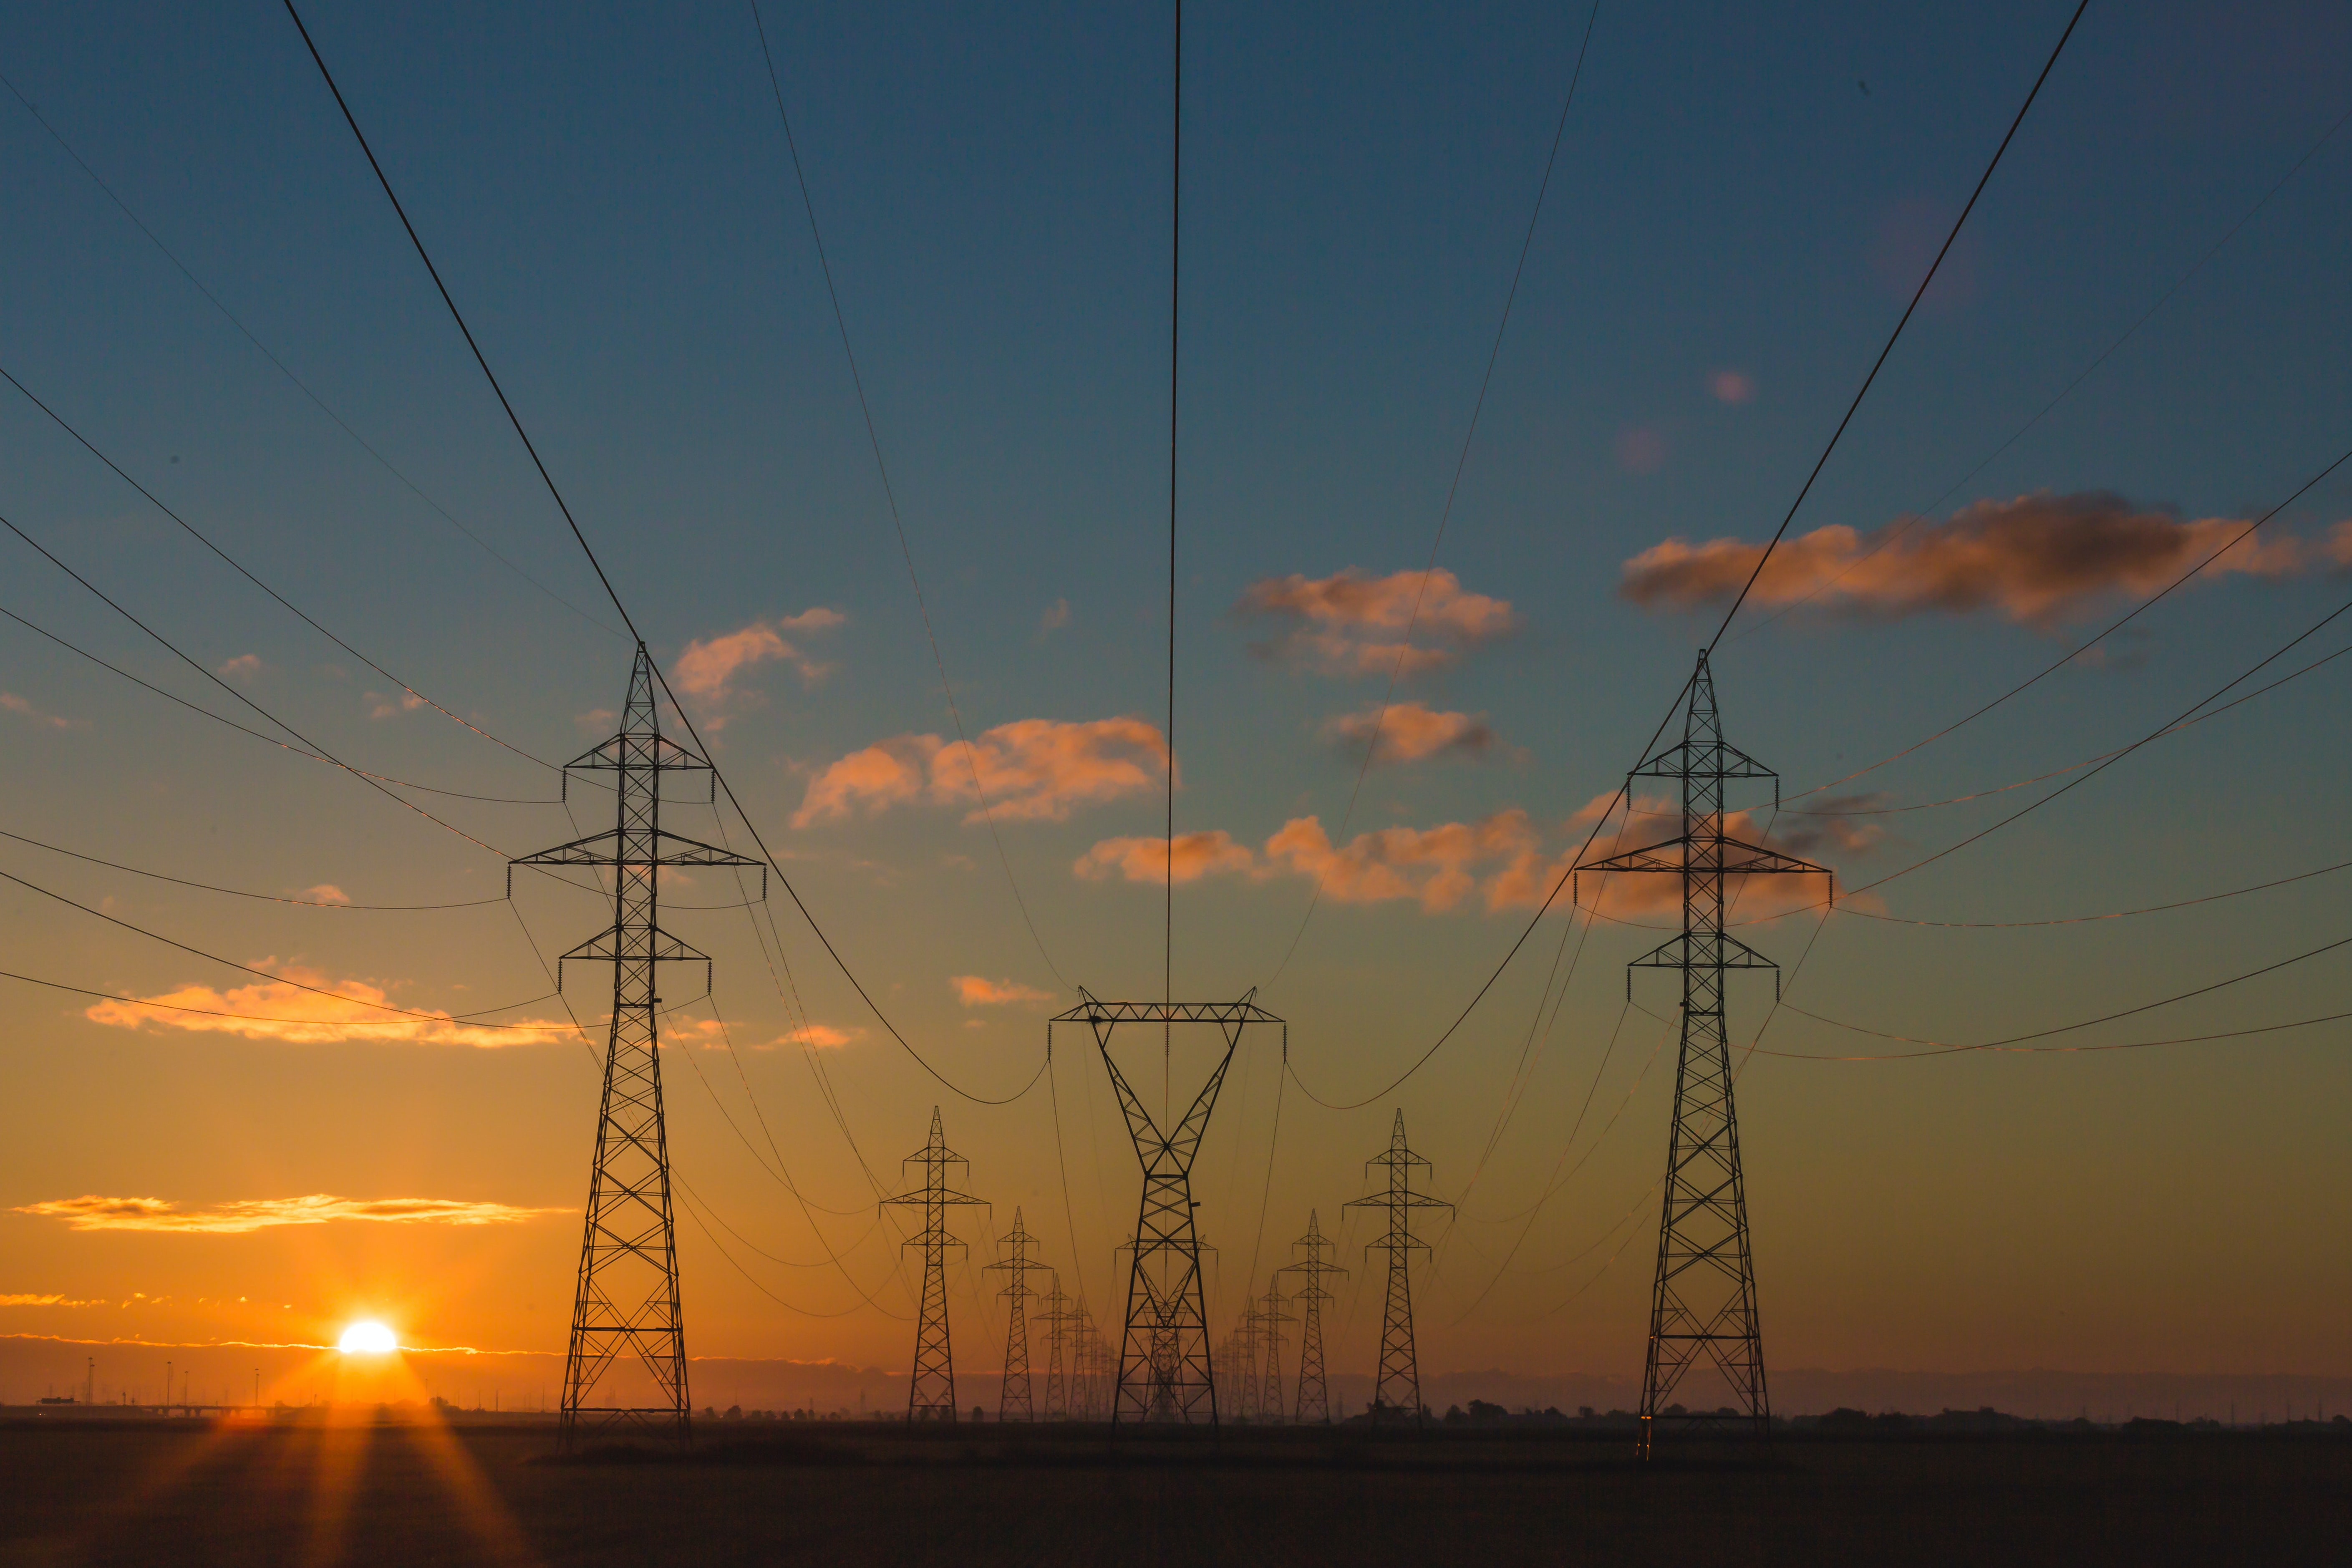 A large number of power pylons connected by power lines during sunset